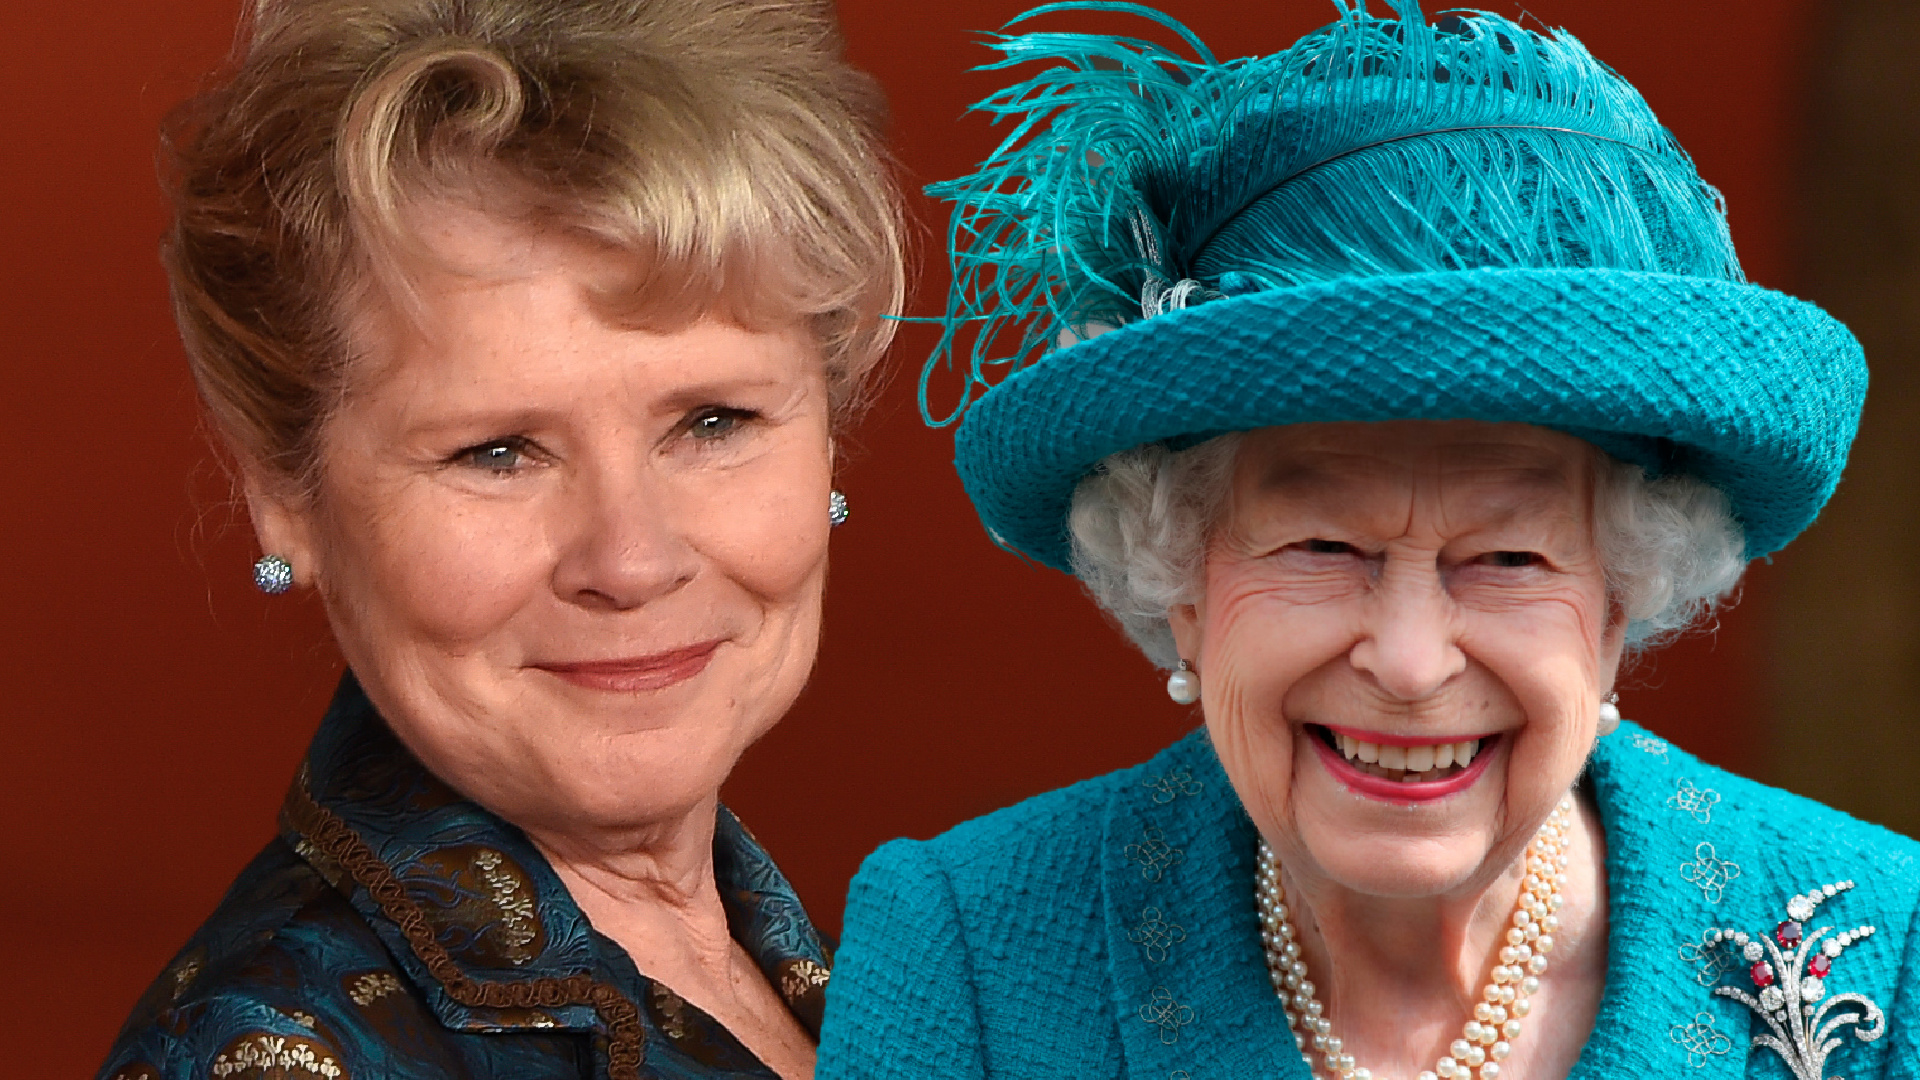 The new Season 5 casting of 'The Crown', side-by-side with the British royals they portray